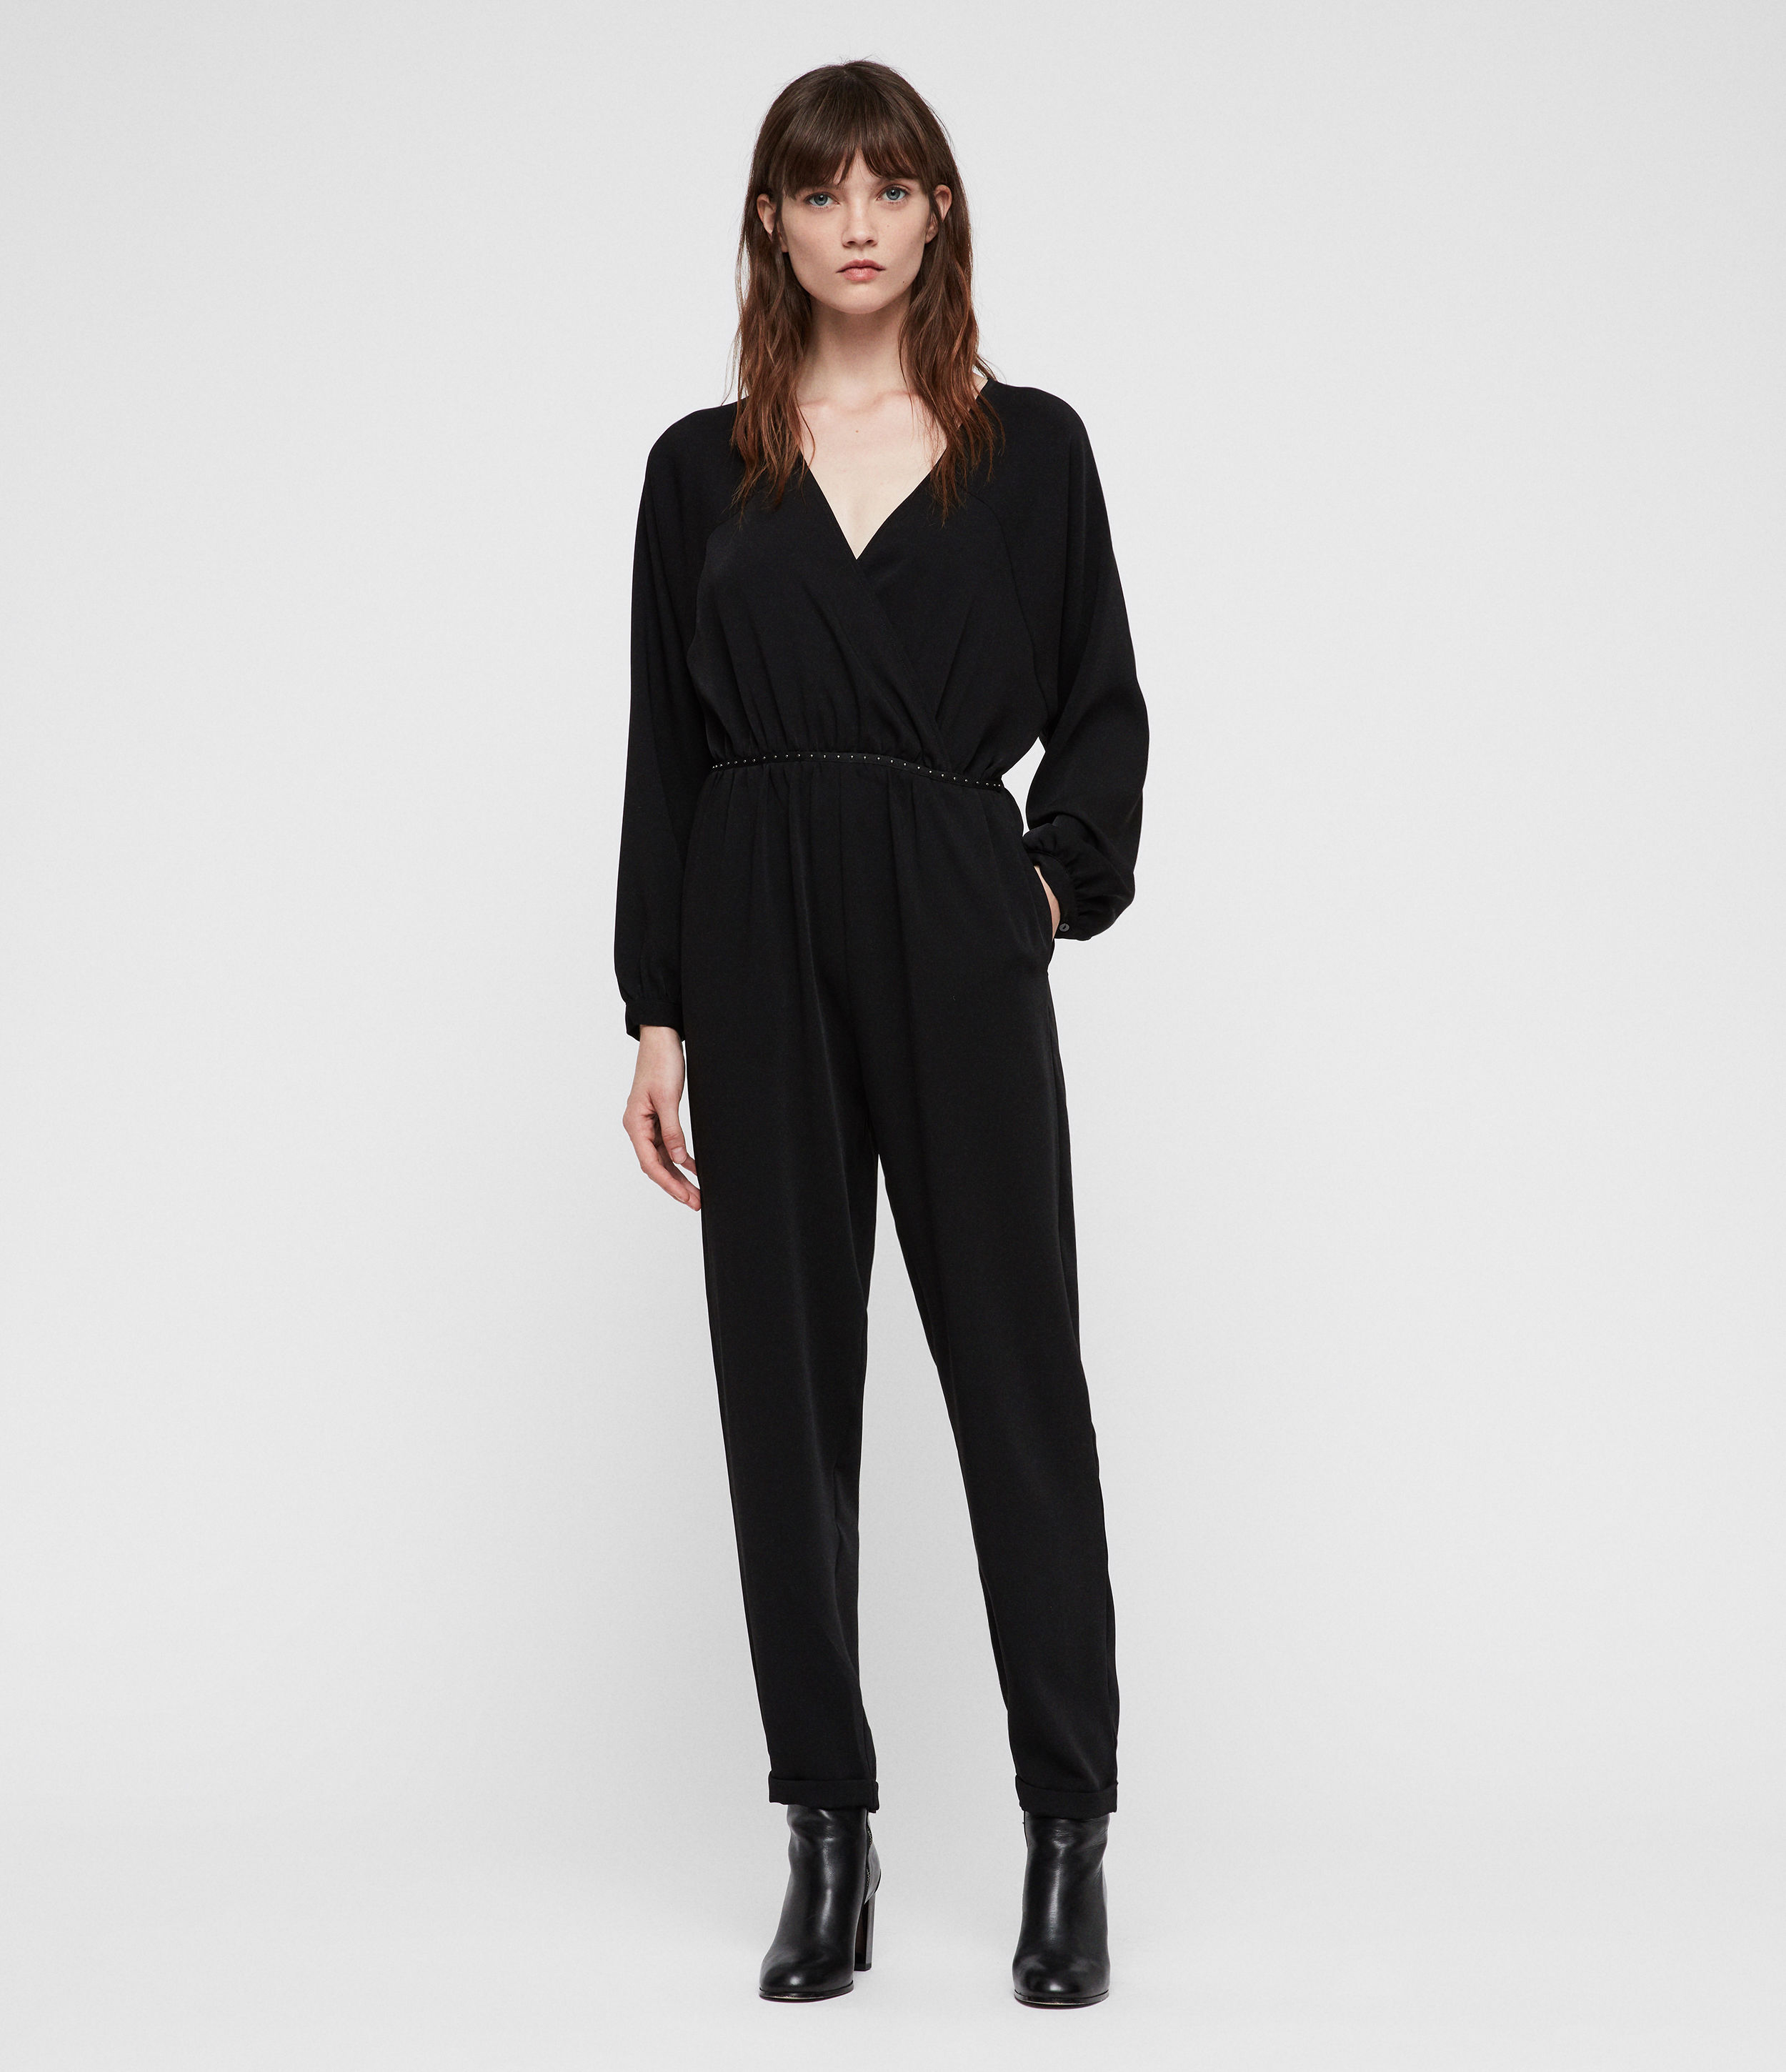 AllSaints Women's Lightweight Molli Jumpsuit, Black, Size: UK 2/US 00